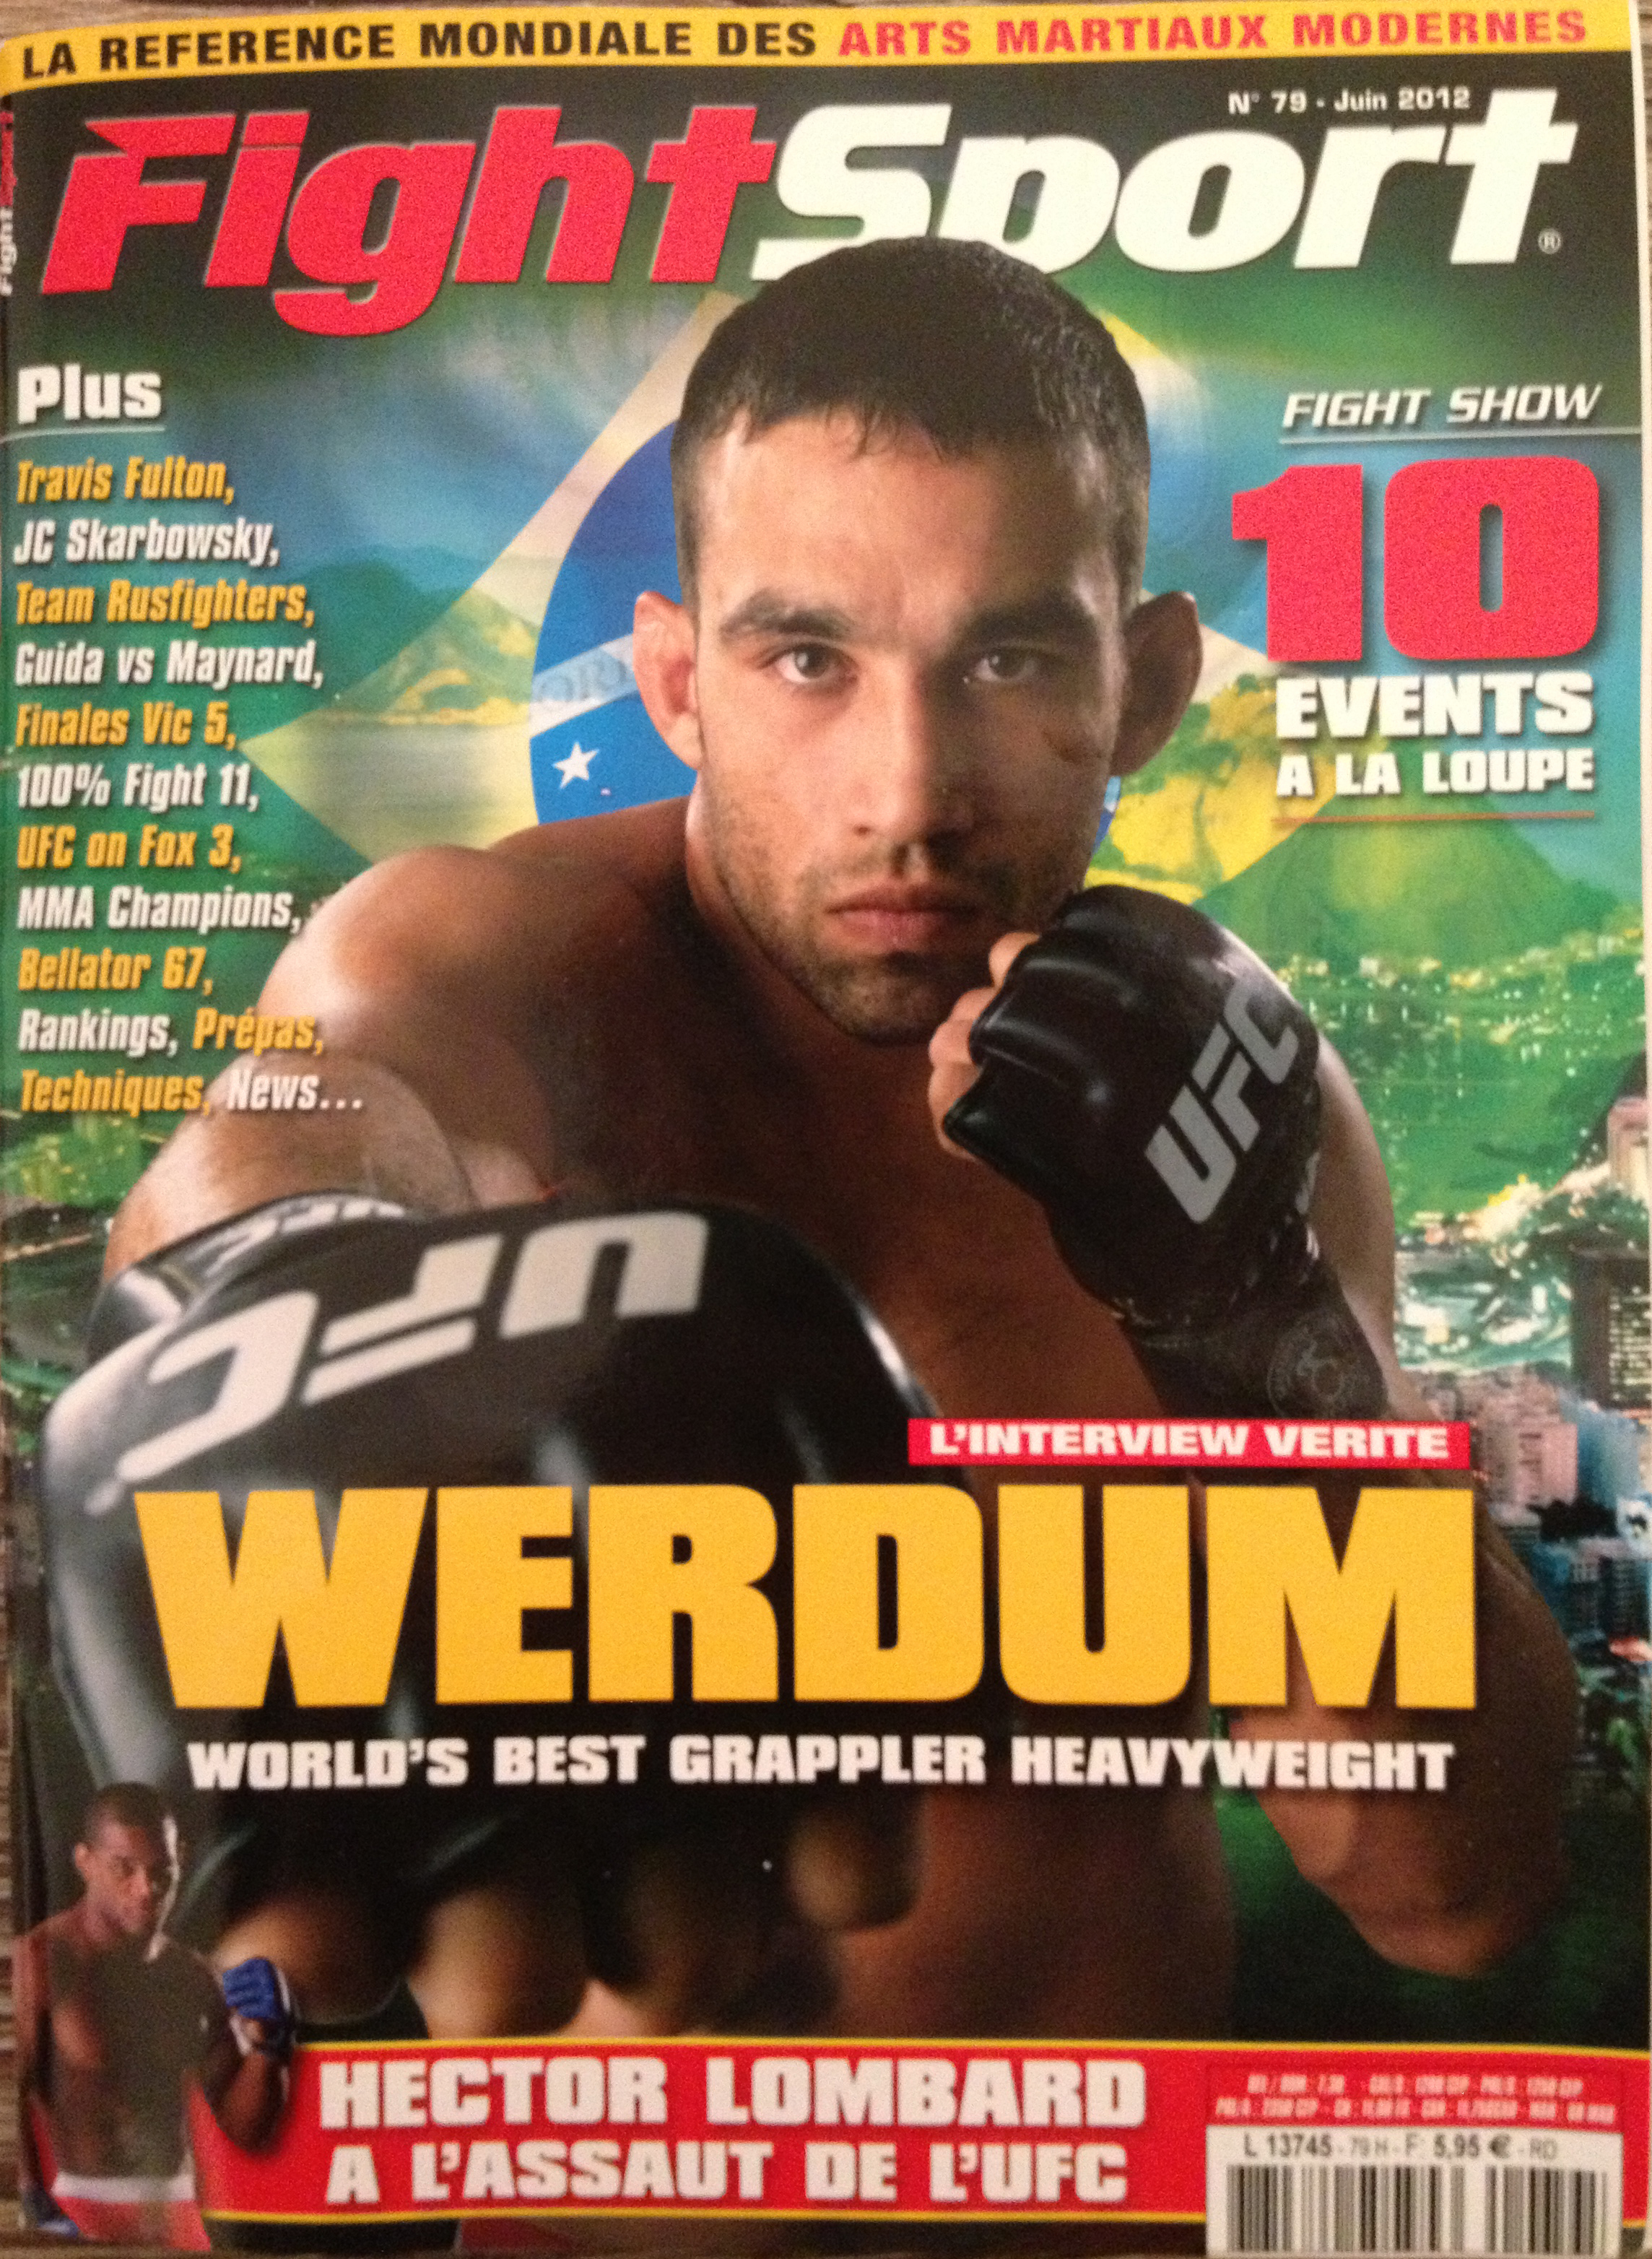 Fightsport Juin 2012 (2)